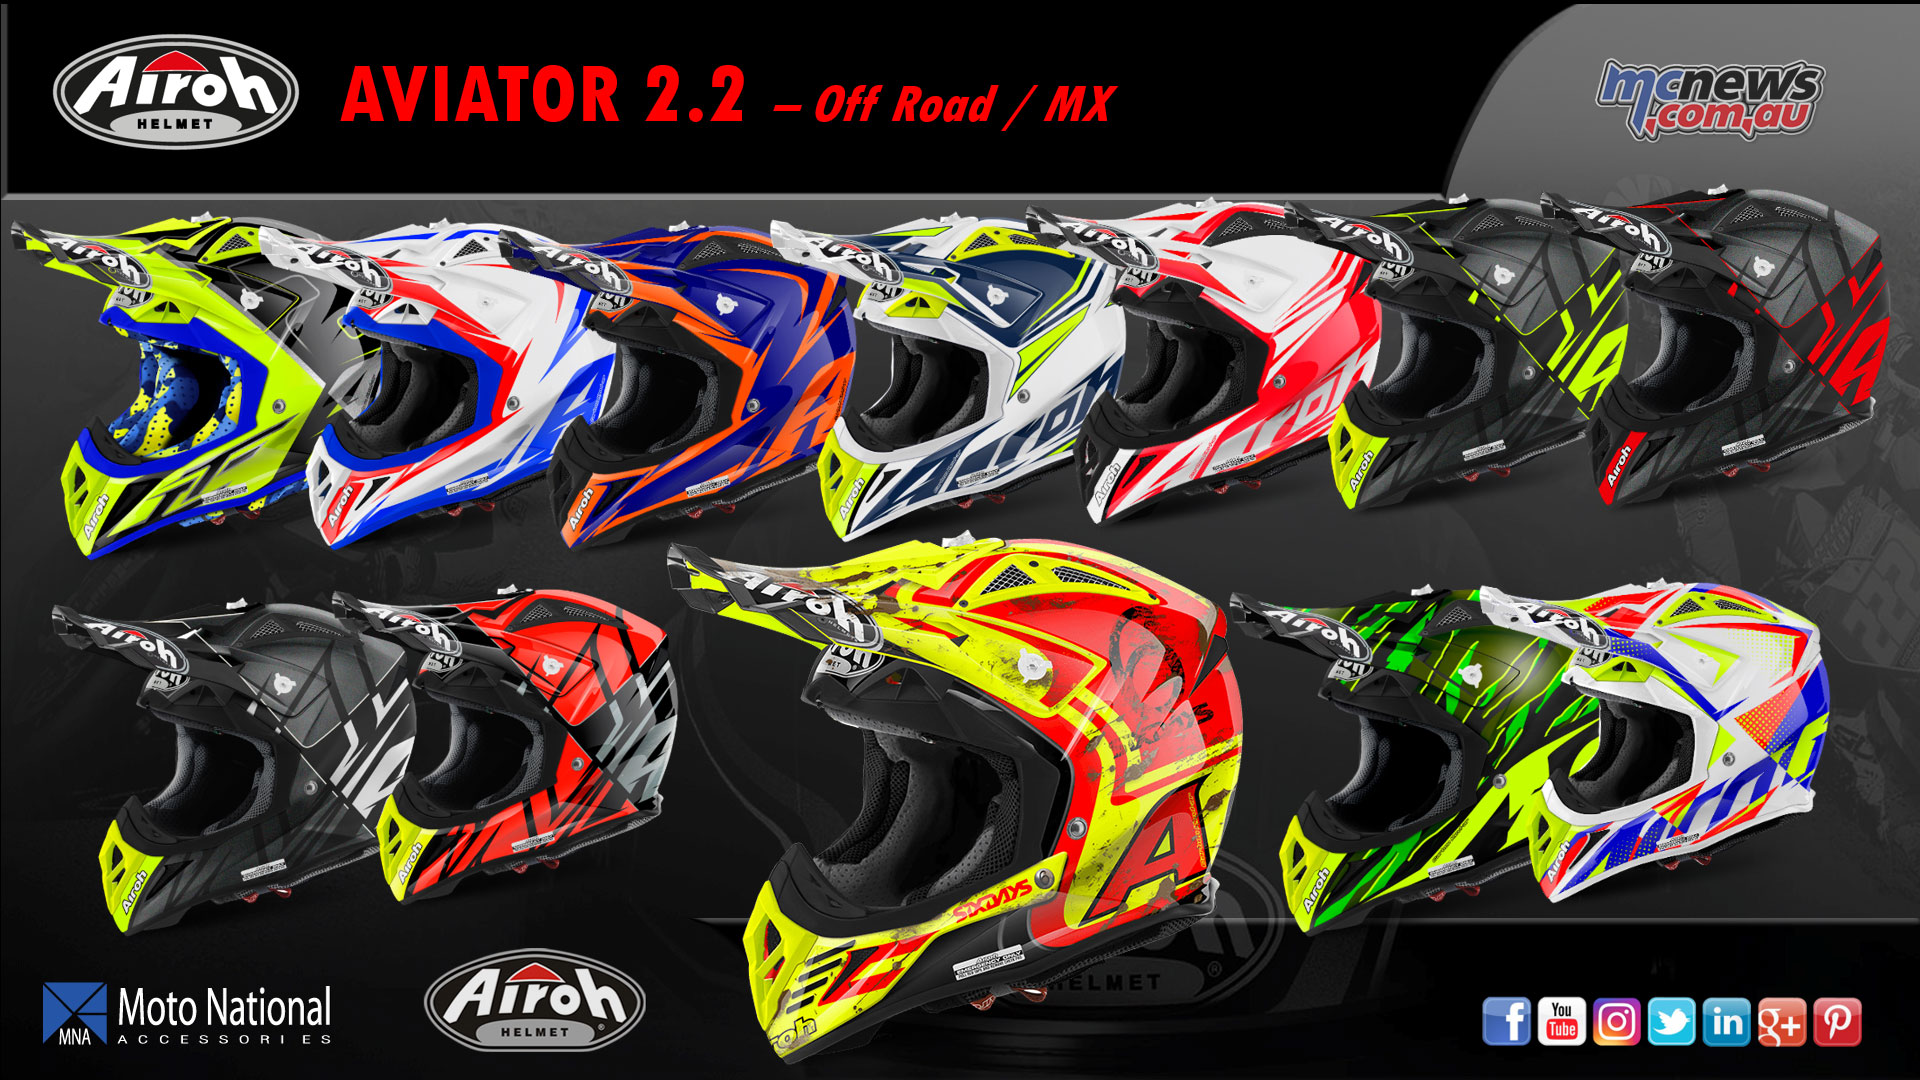 The Airoh Aviator 2.2 comes in a huge variety of colour options.